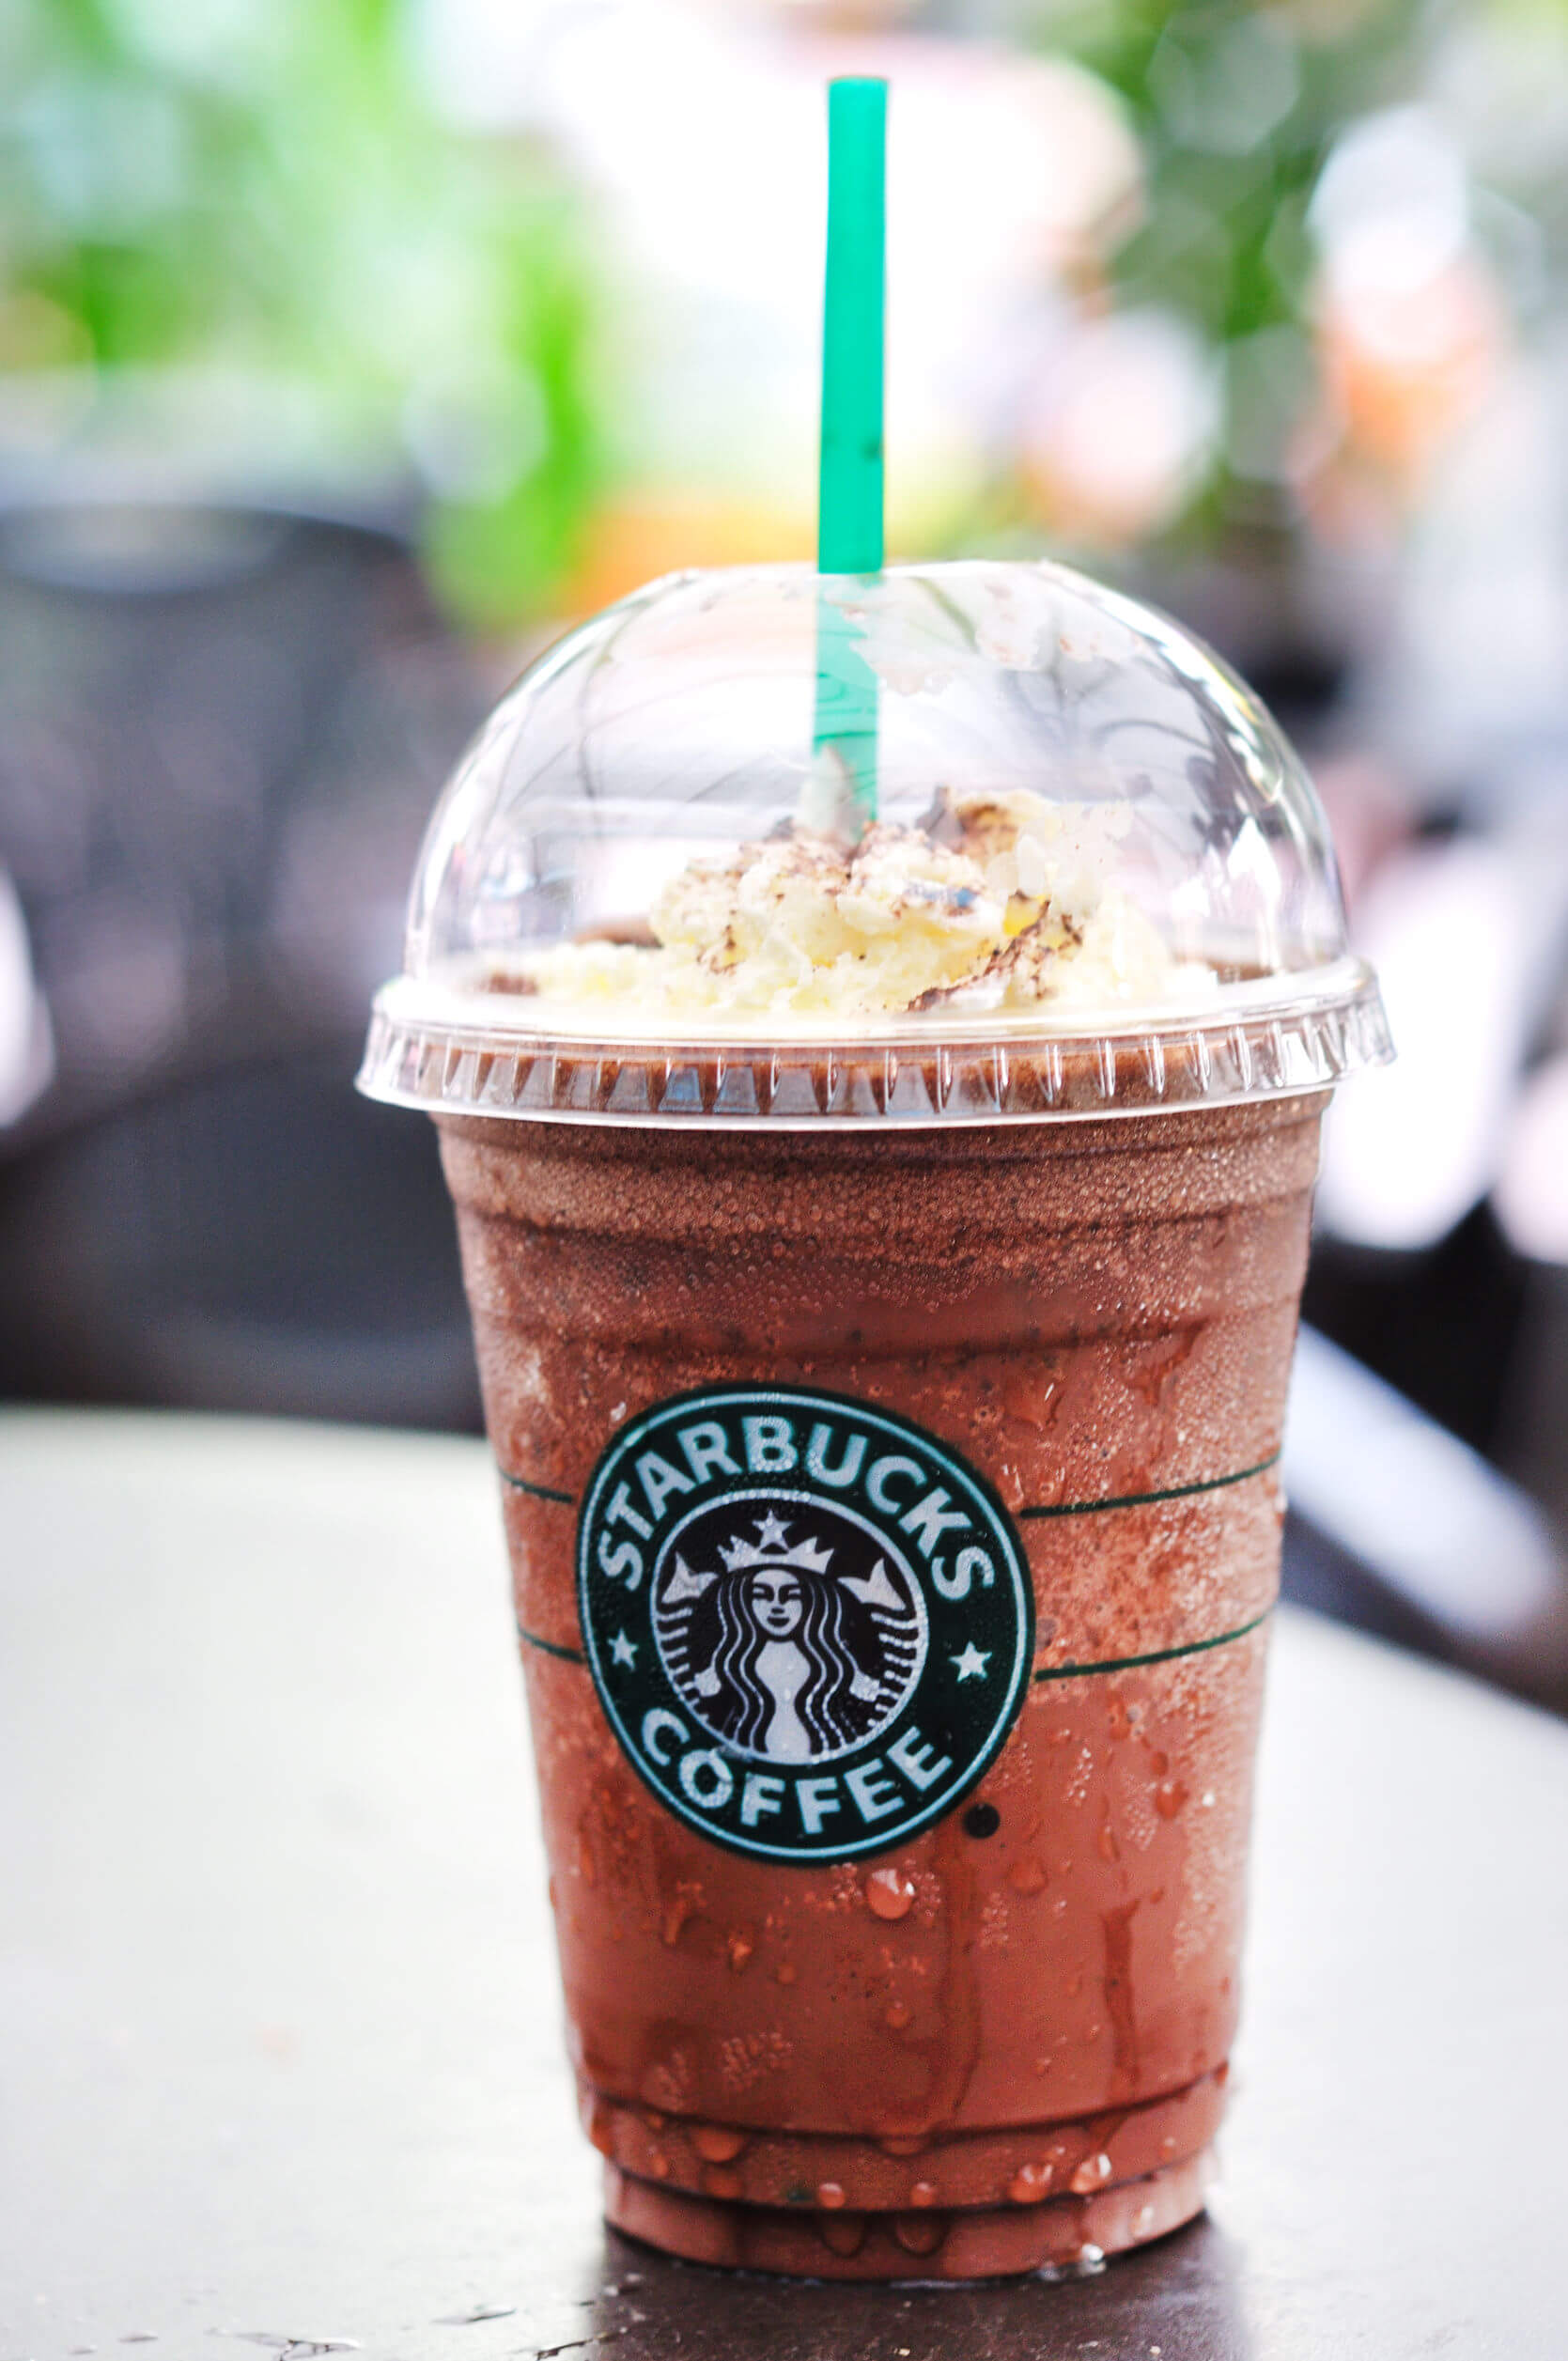 Starbucks Frappucino - Another food high in sugar making you fat and causing Type II Diabetes